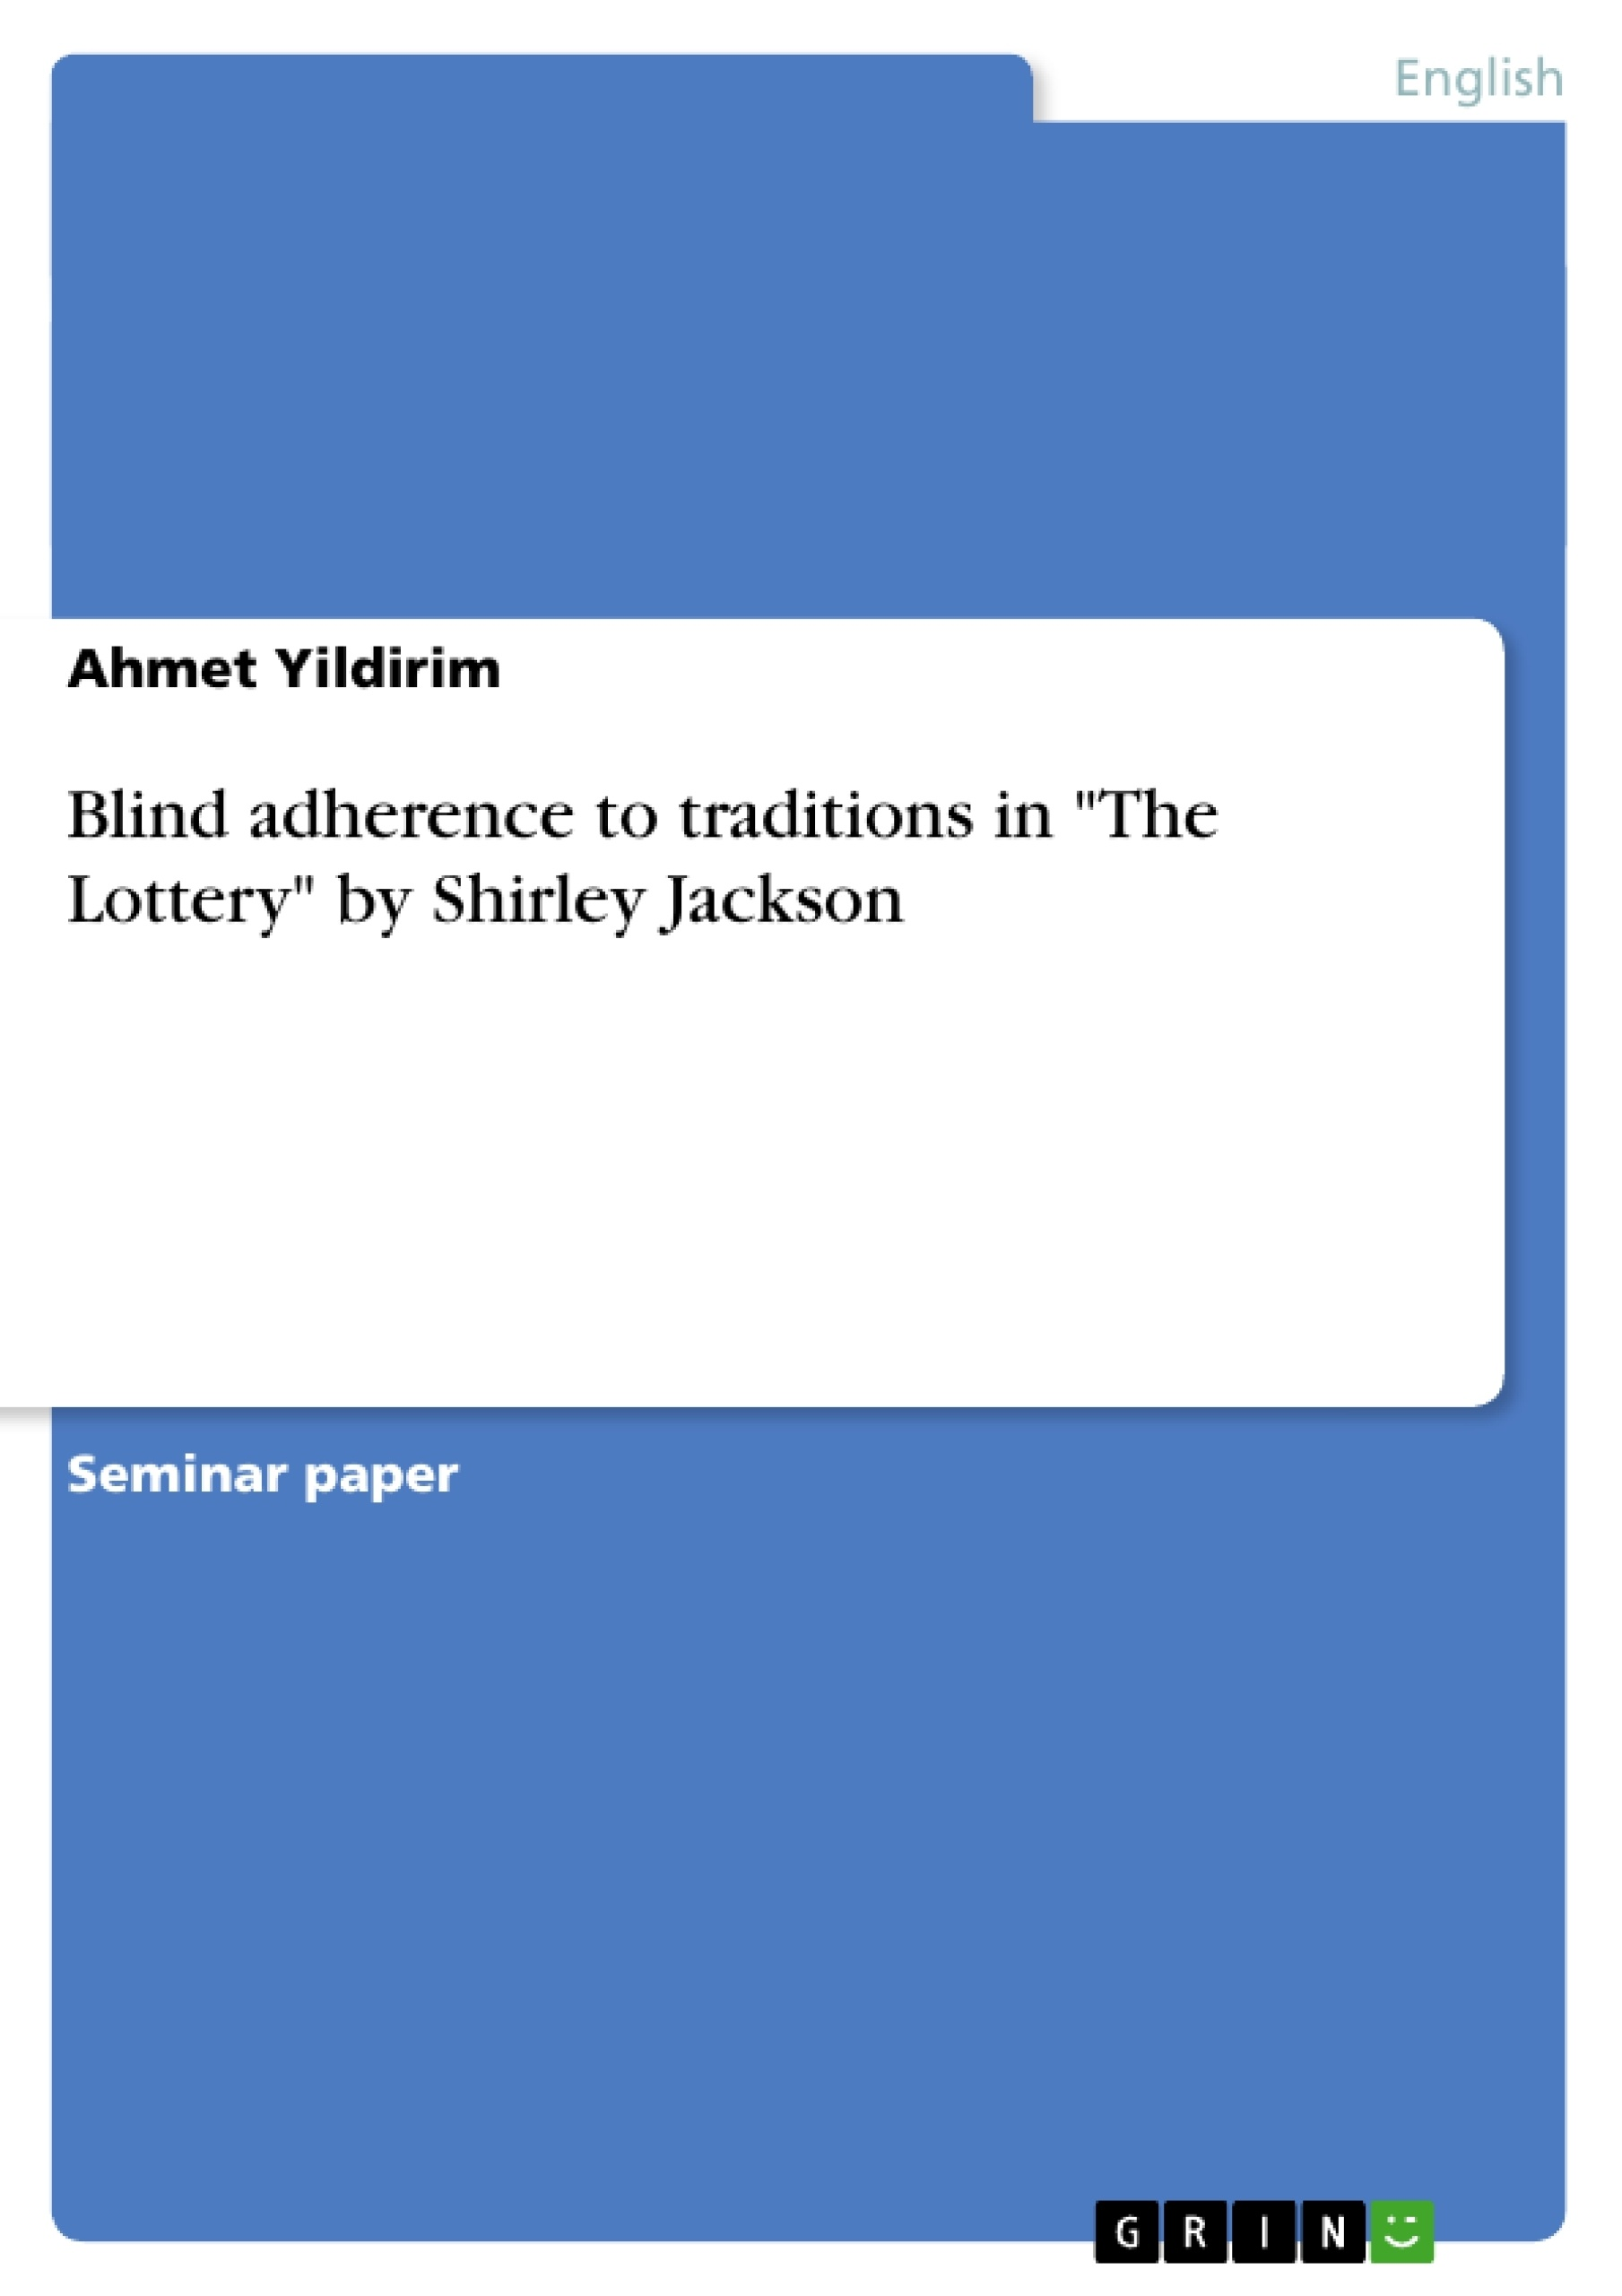 blind adherence to traditions in the lottery by shirley jackson  upload your own papers earn money and win an iphone x